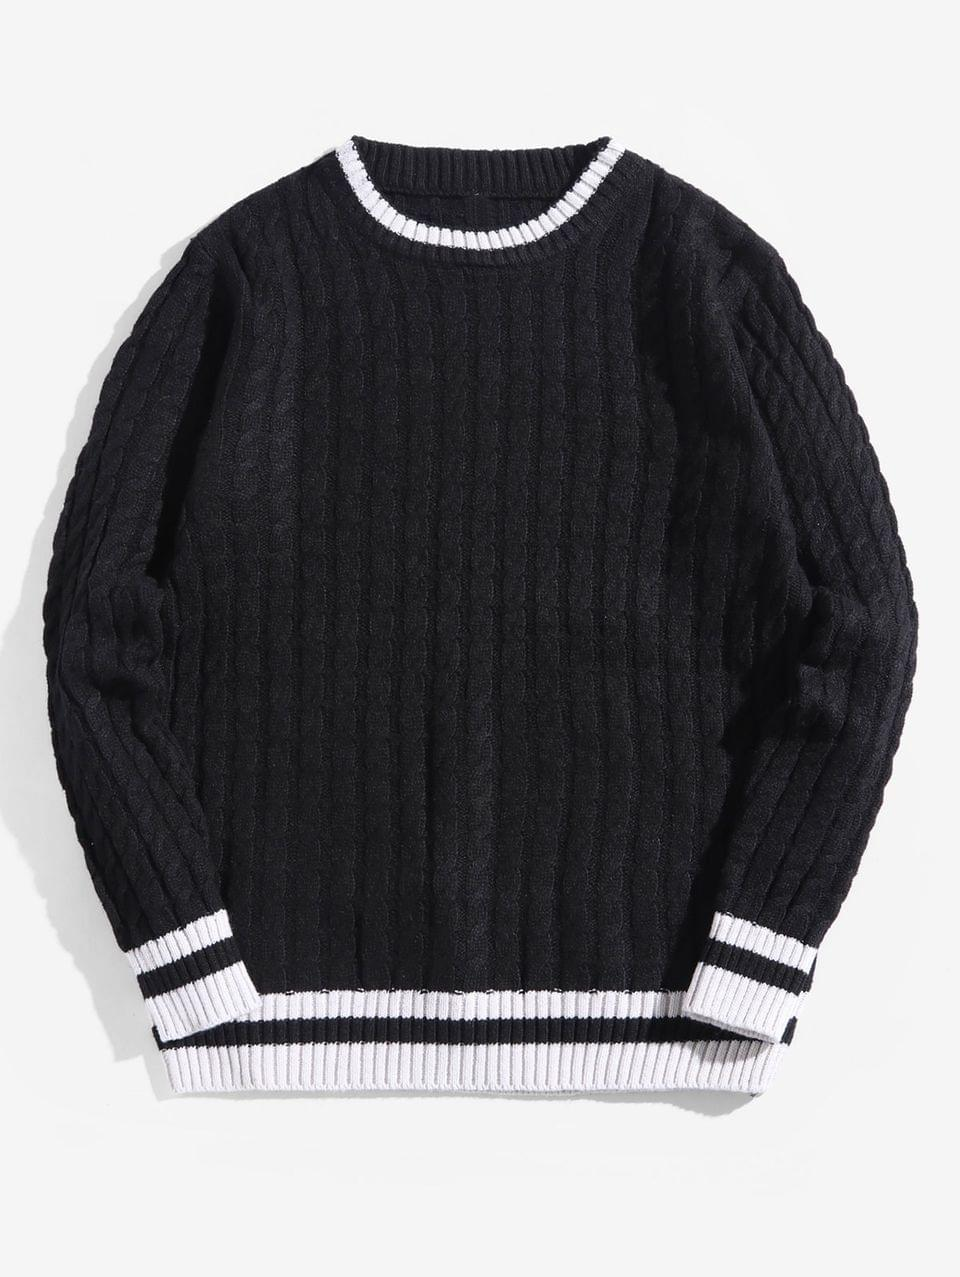 Men's Colorblock Stripes Cable Knit Pullover Sweater - Black M